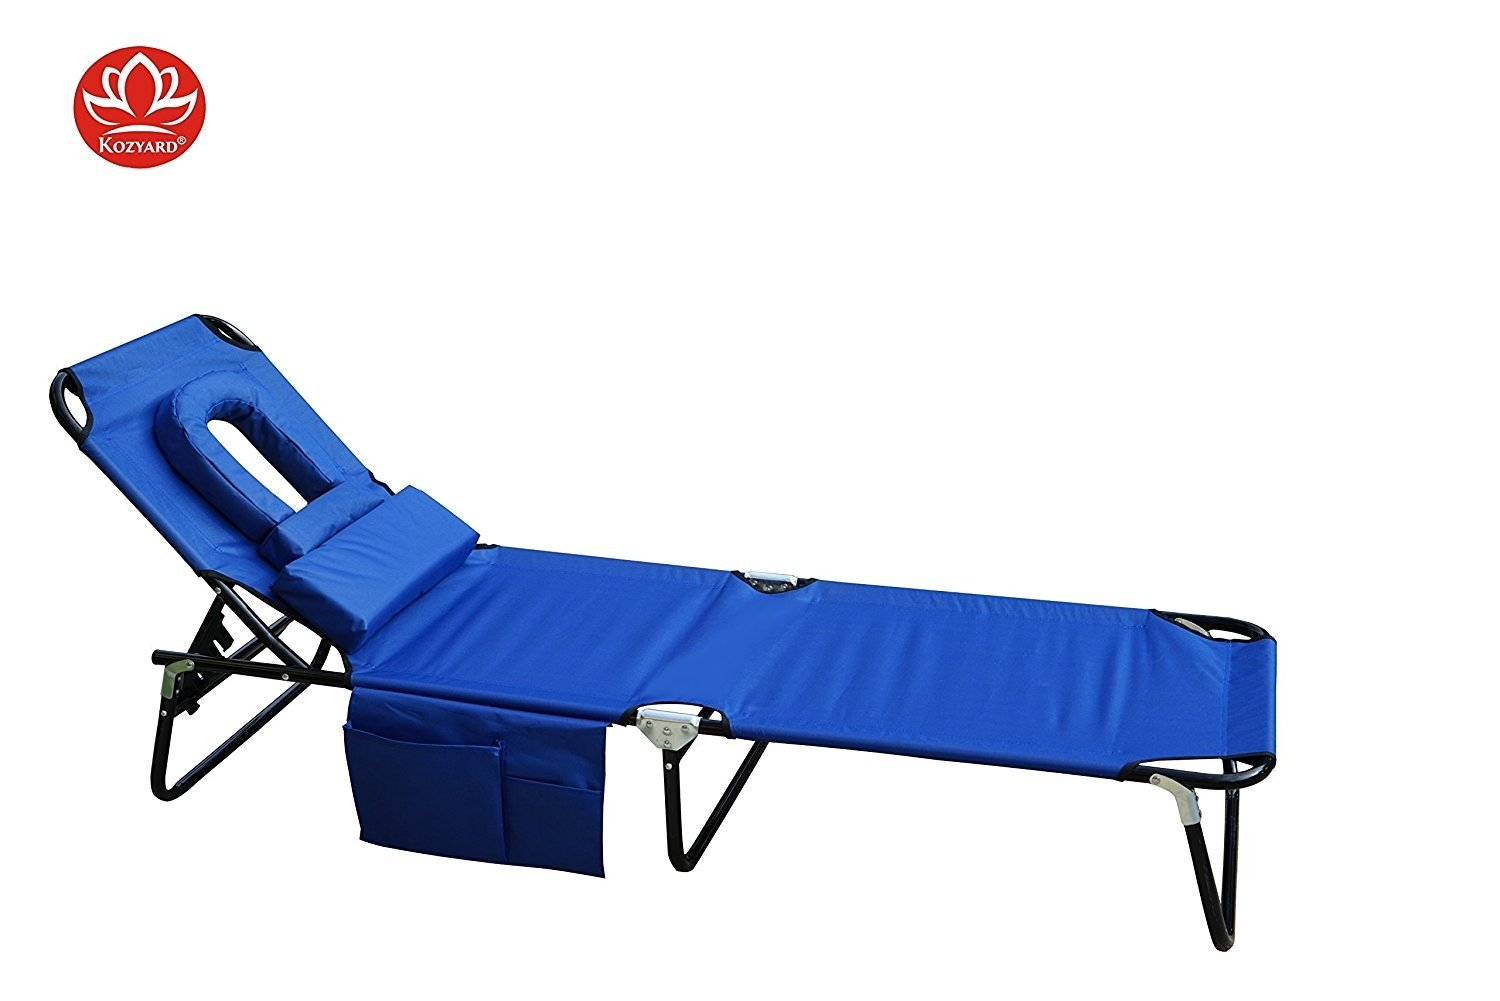 Kozyard Foldable Chaise Lounge Chair For Beach, Patio, Pool, Back Yard Or  Camping